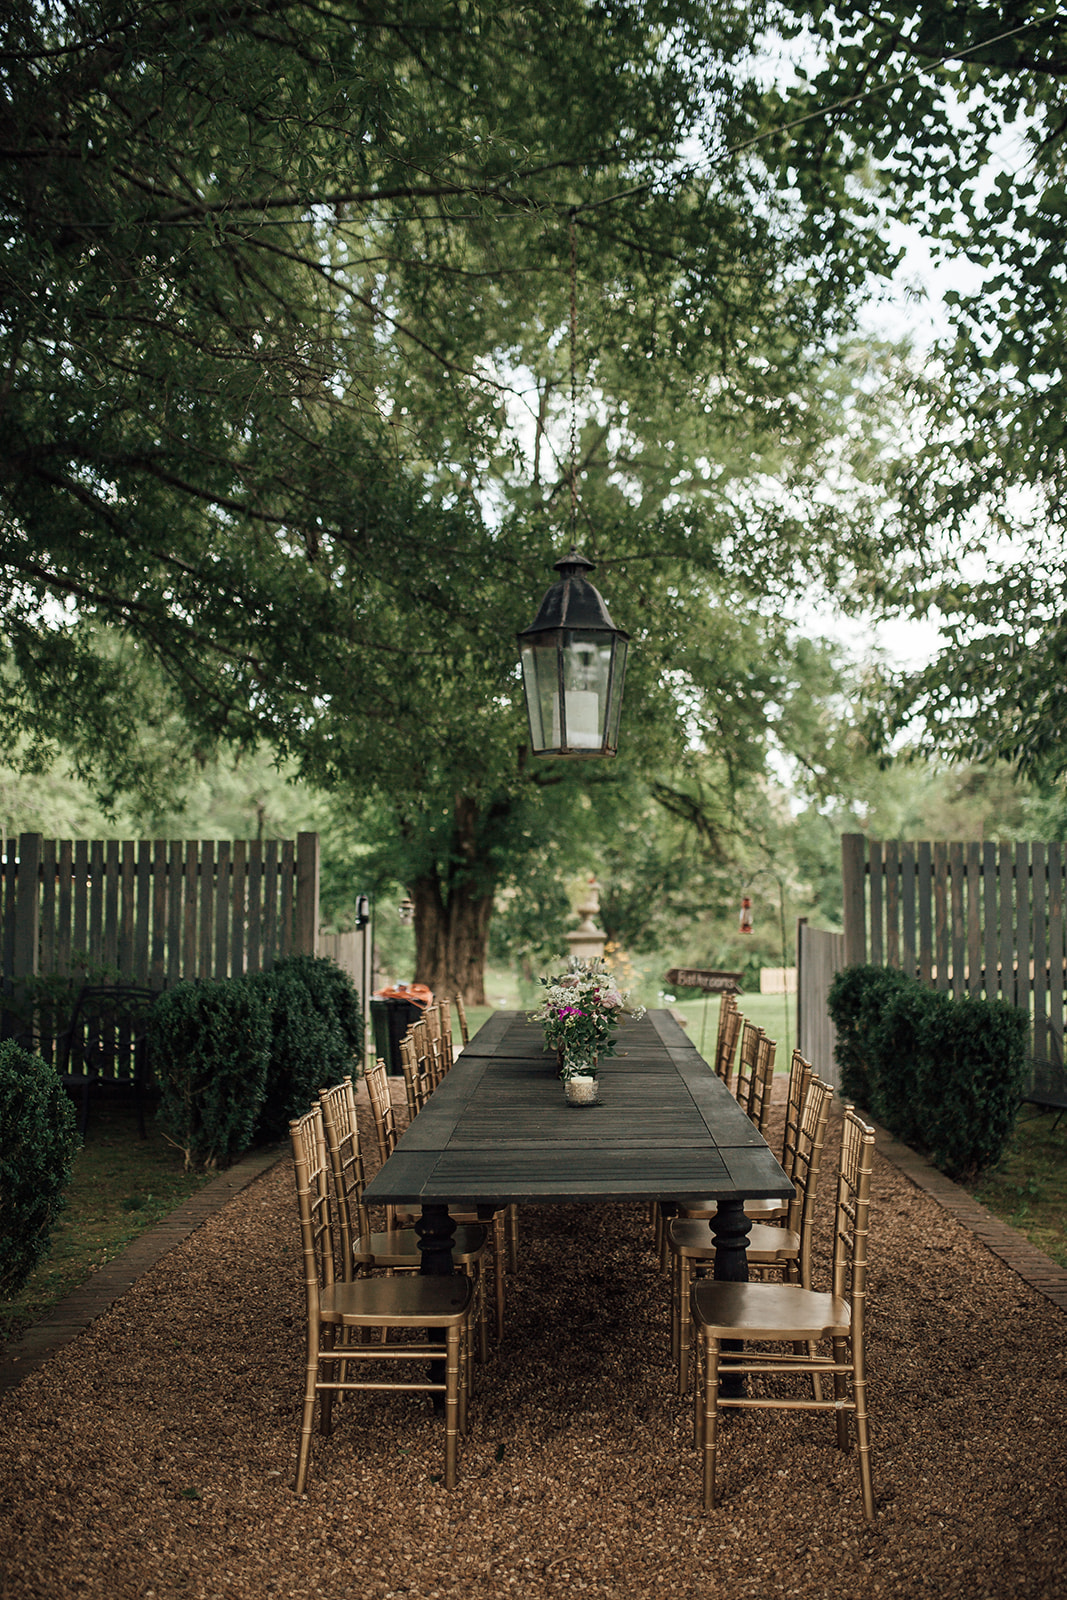 cassie-cook-photography-mcglaughlin-wedding-hedge-farm-ms-wedding-venue-123.jpg